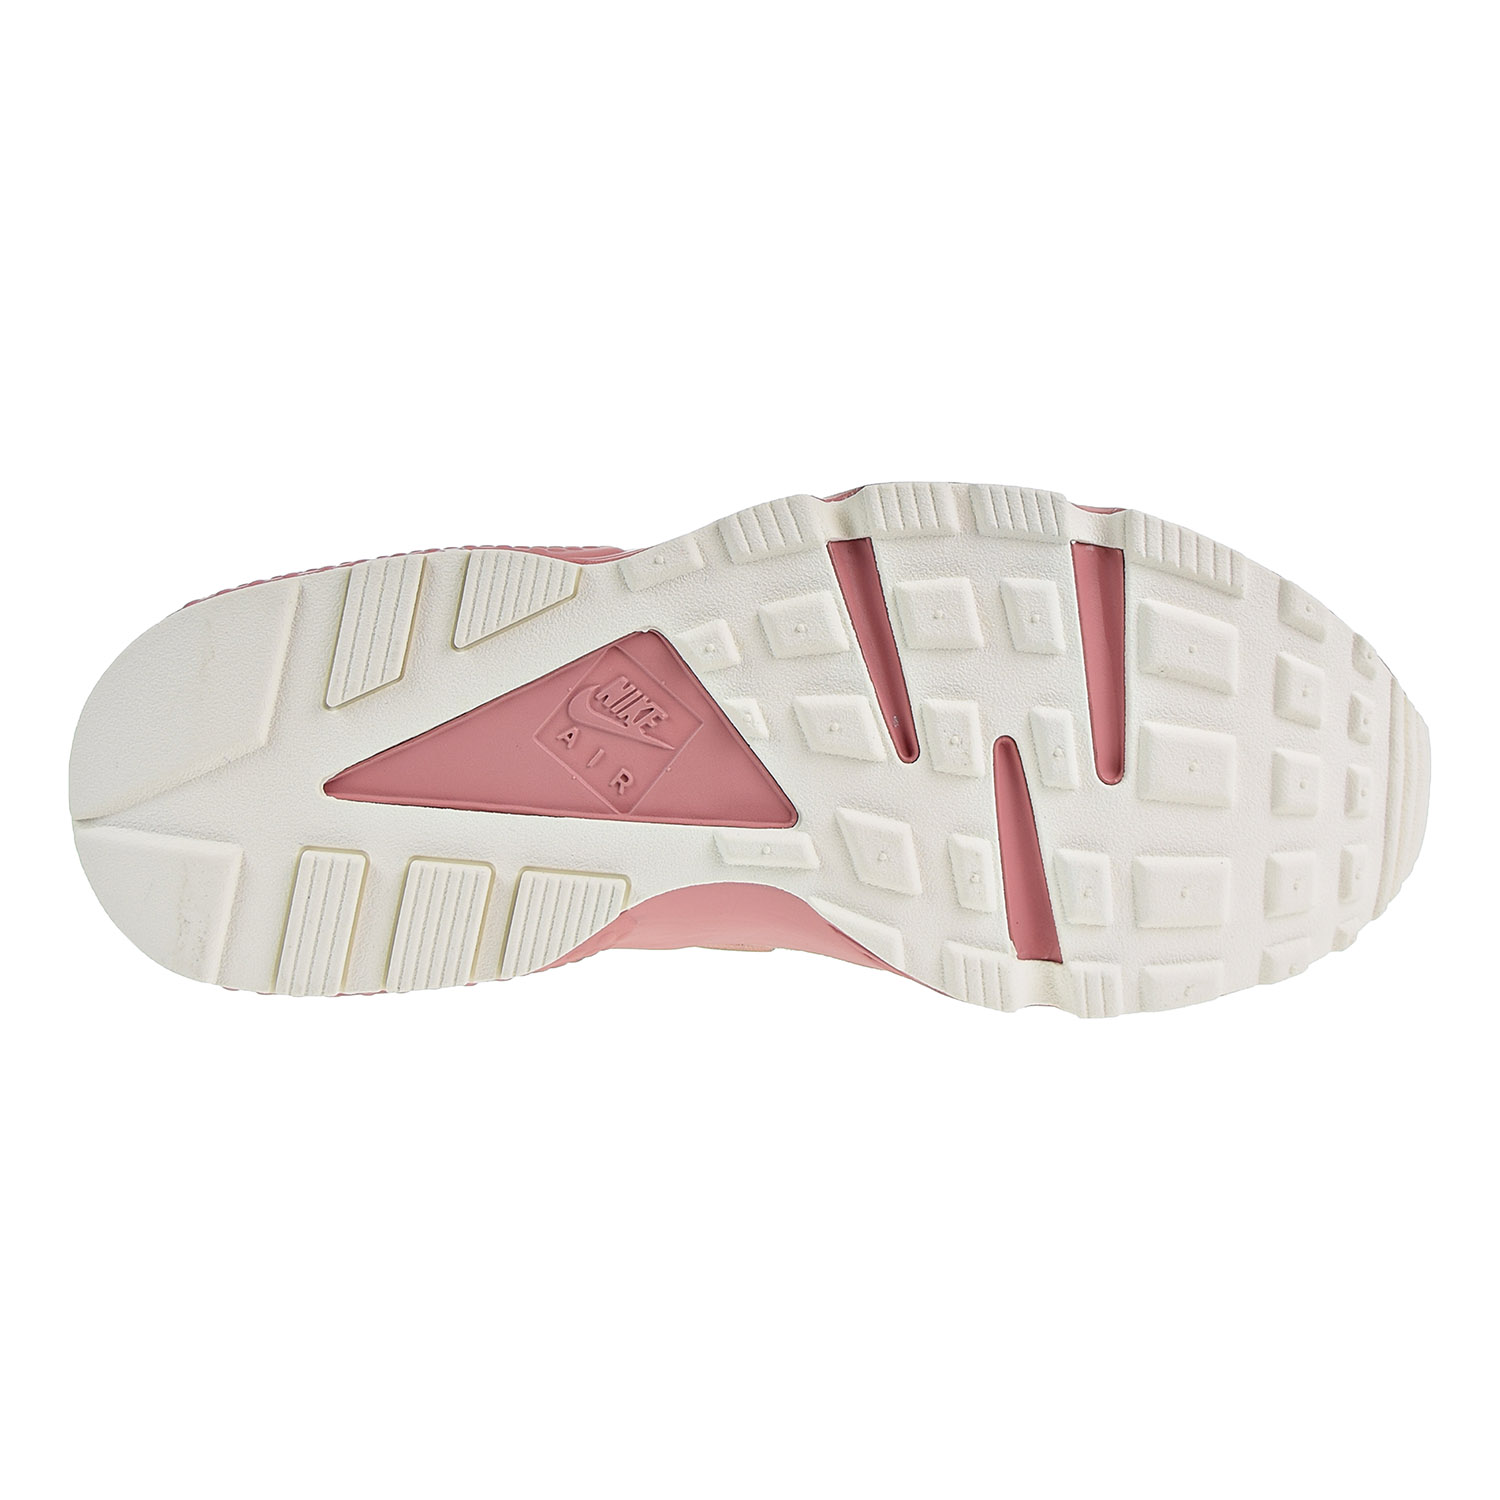 Nike Air Huarache Run Premium Men's Running Shoes Rust Pink/MTLC Red Bronze-Sail 704830-601